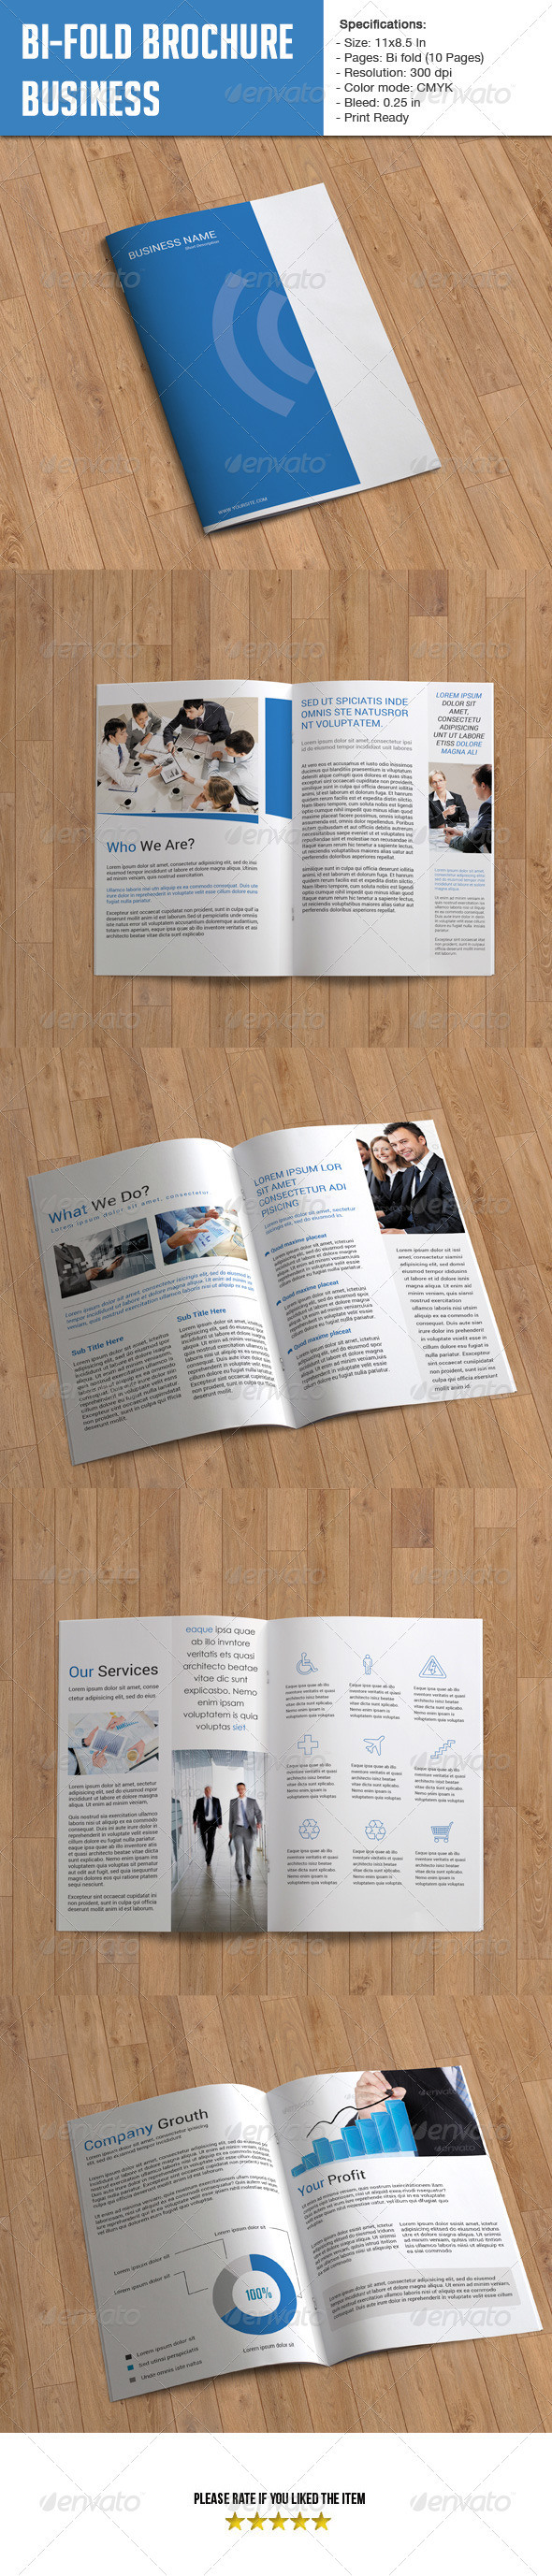 Bifold Brochure for Business-10 Pages - Corporate Brochures